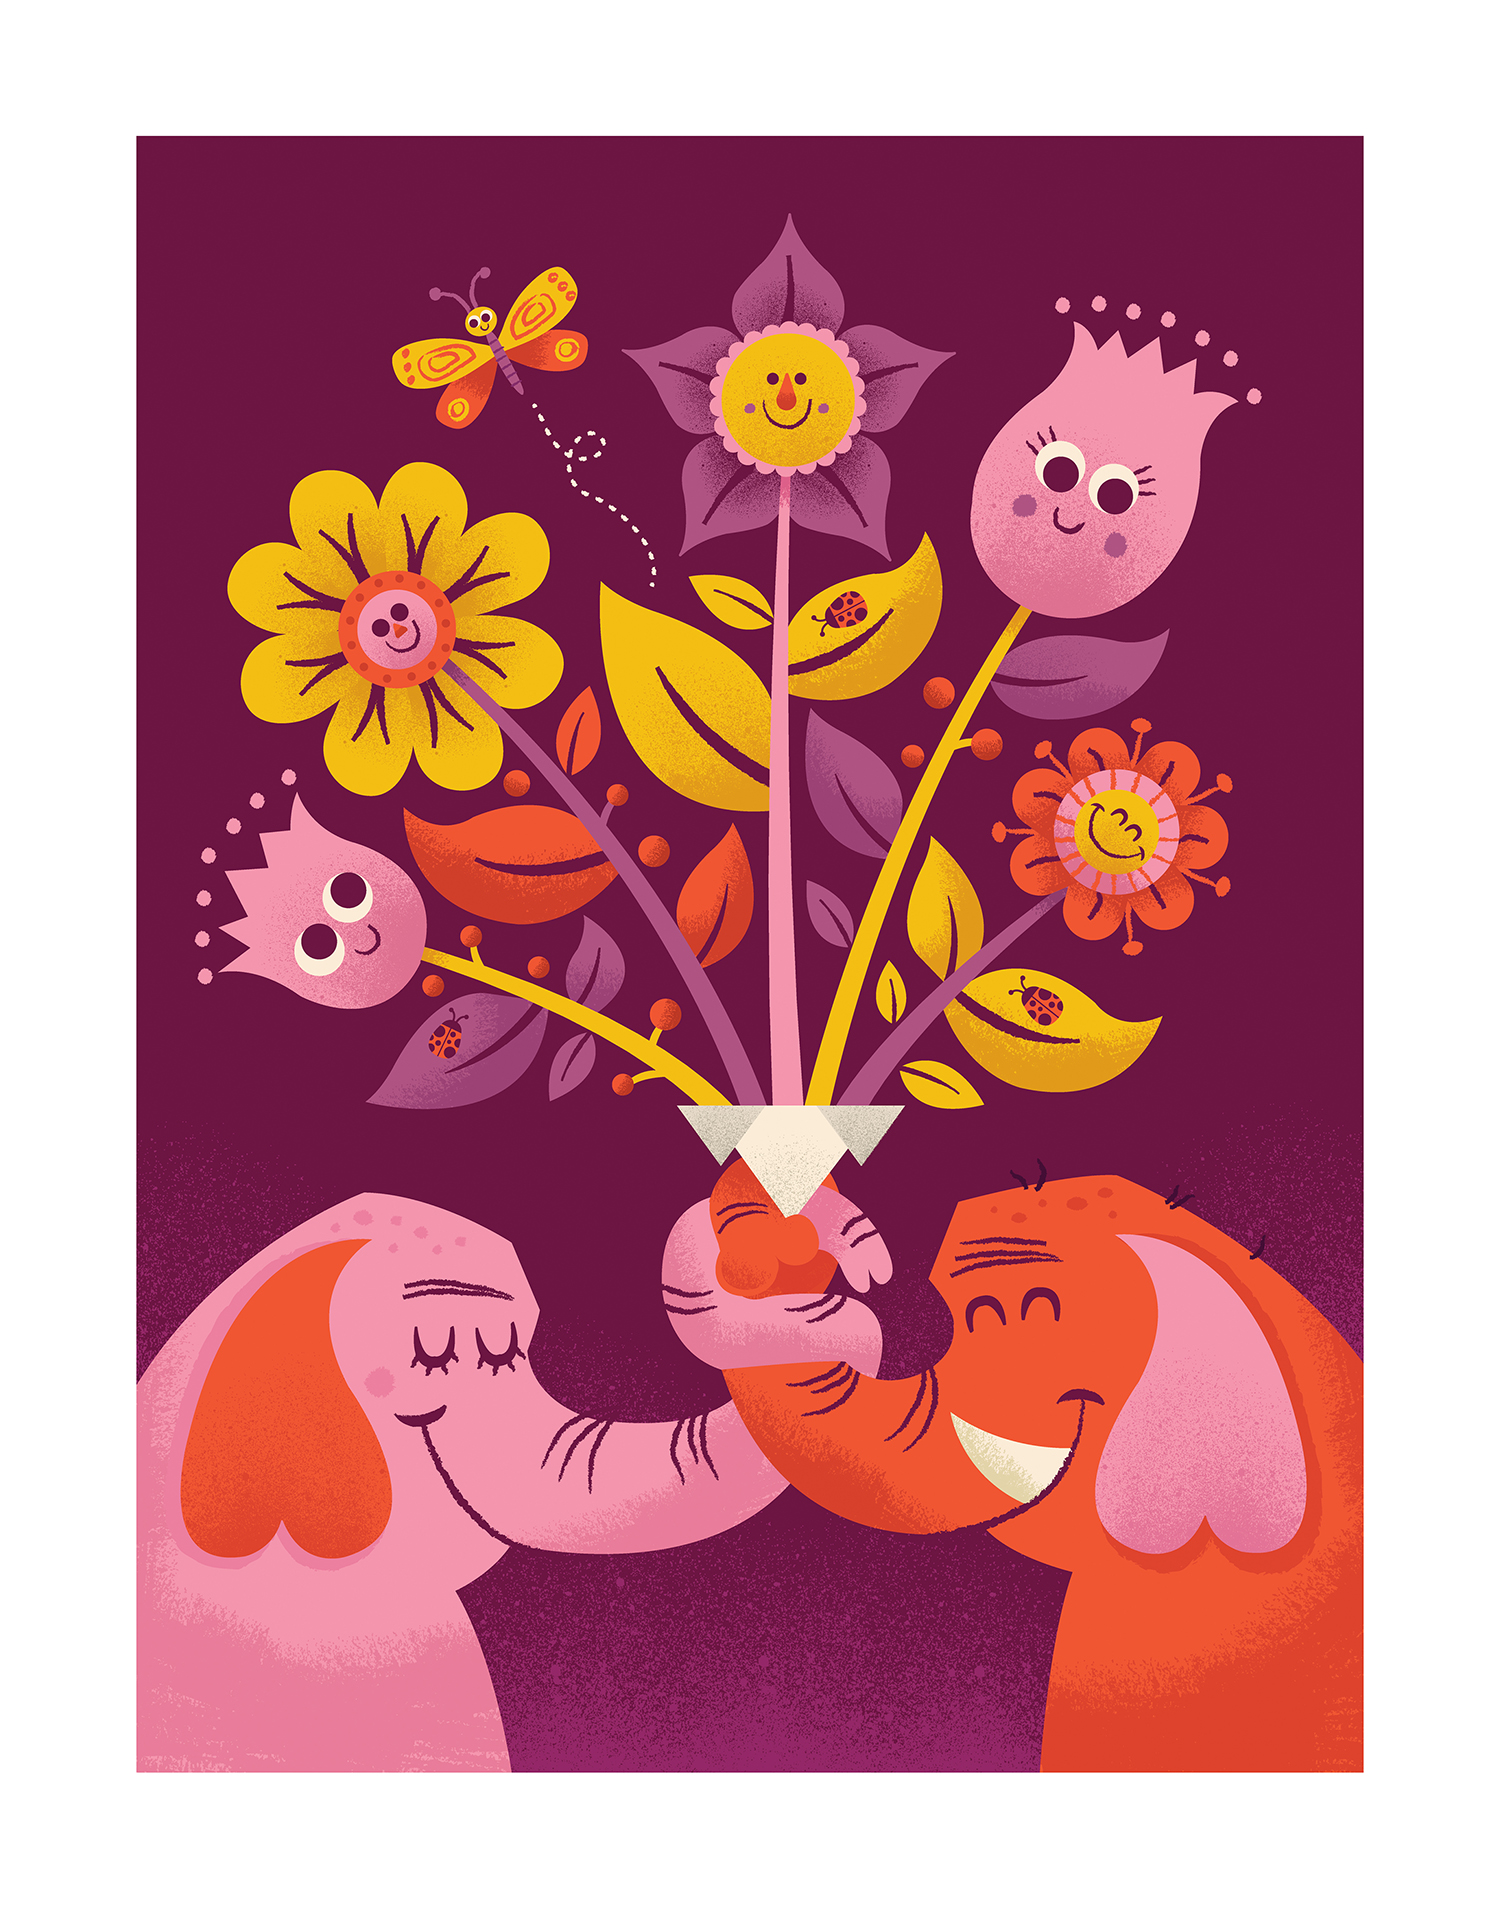 'Flower Friends' by Tad Carpenter